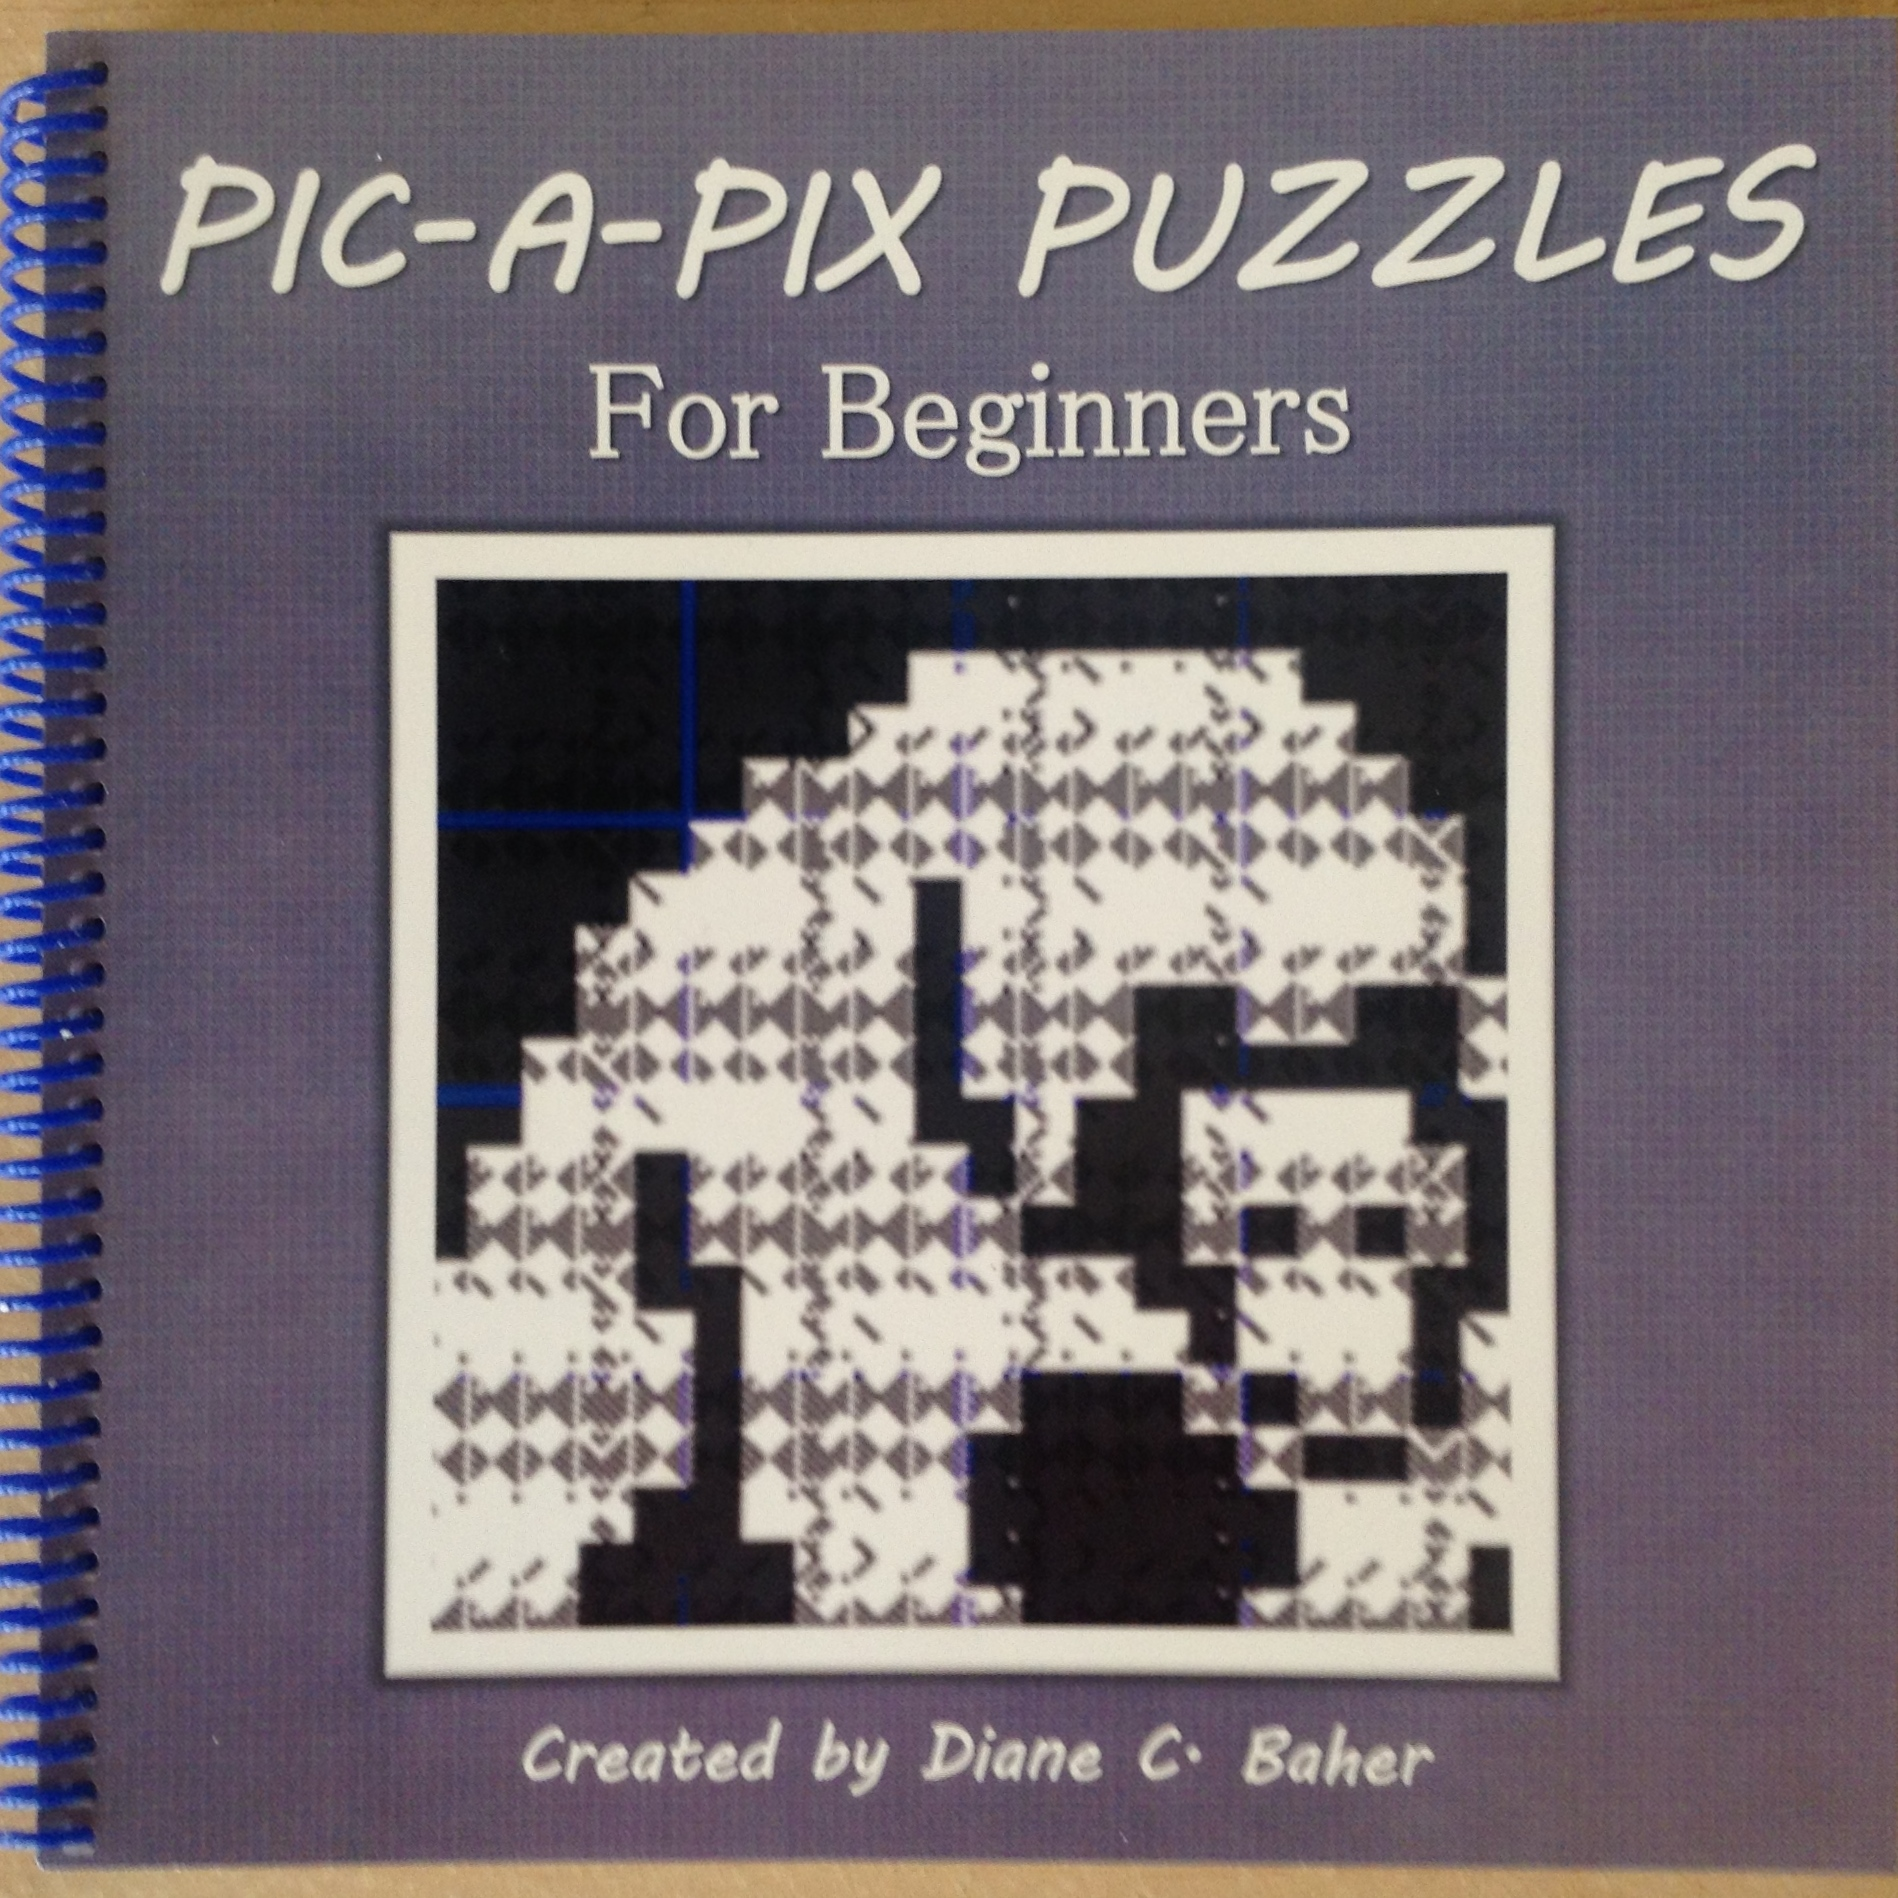 Pic-a-Pix Puzzles for Beginners by Diane Baher